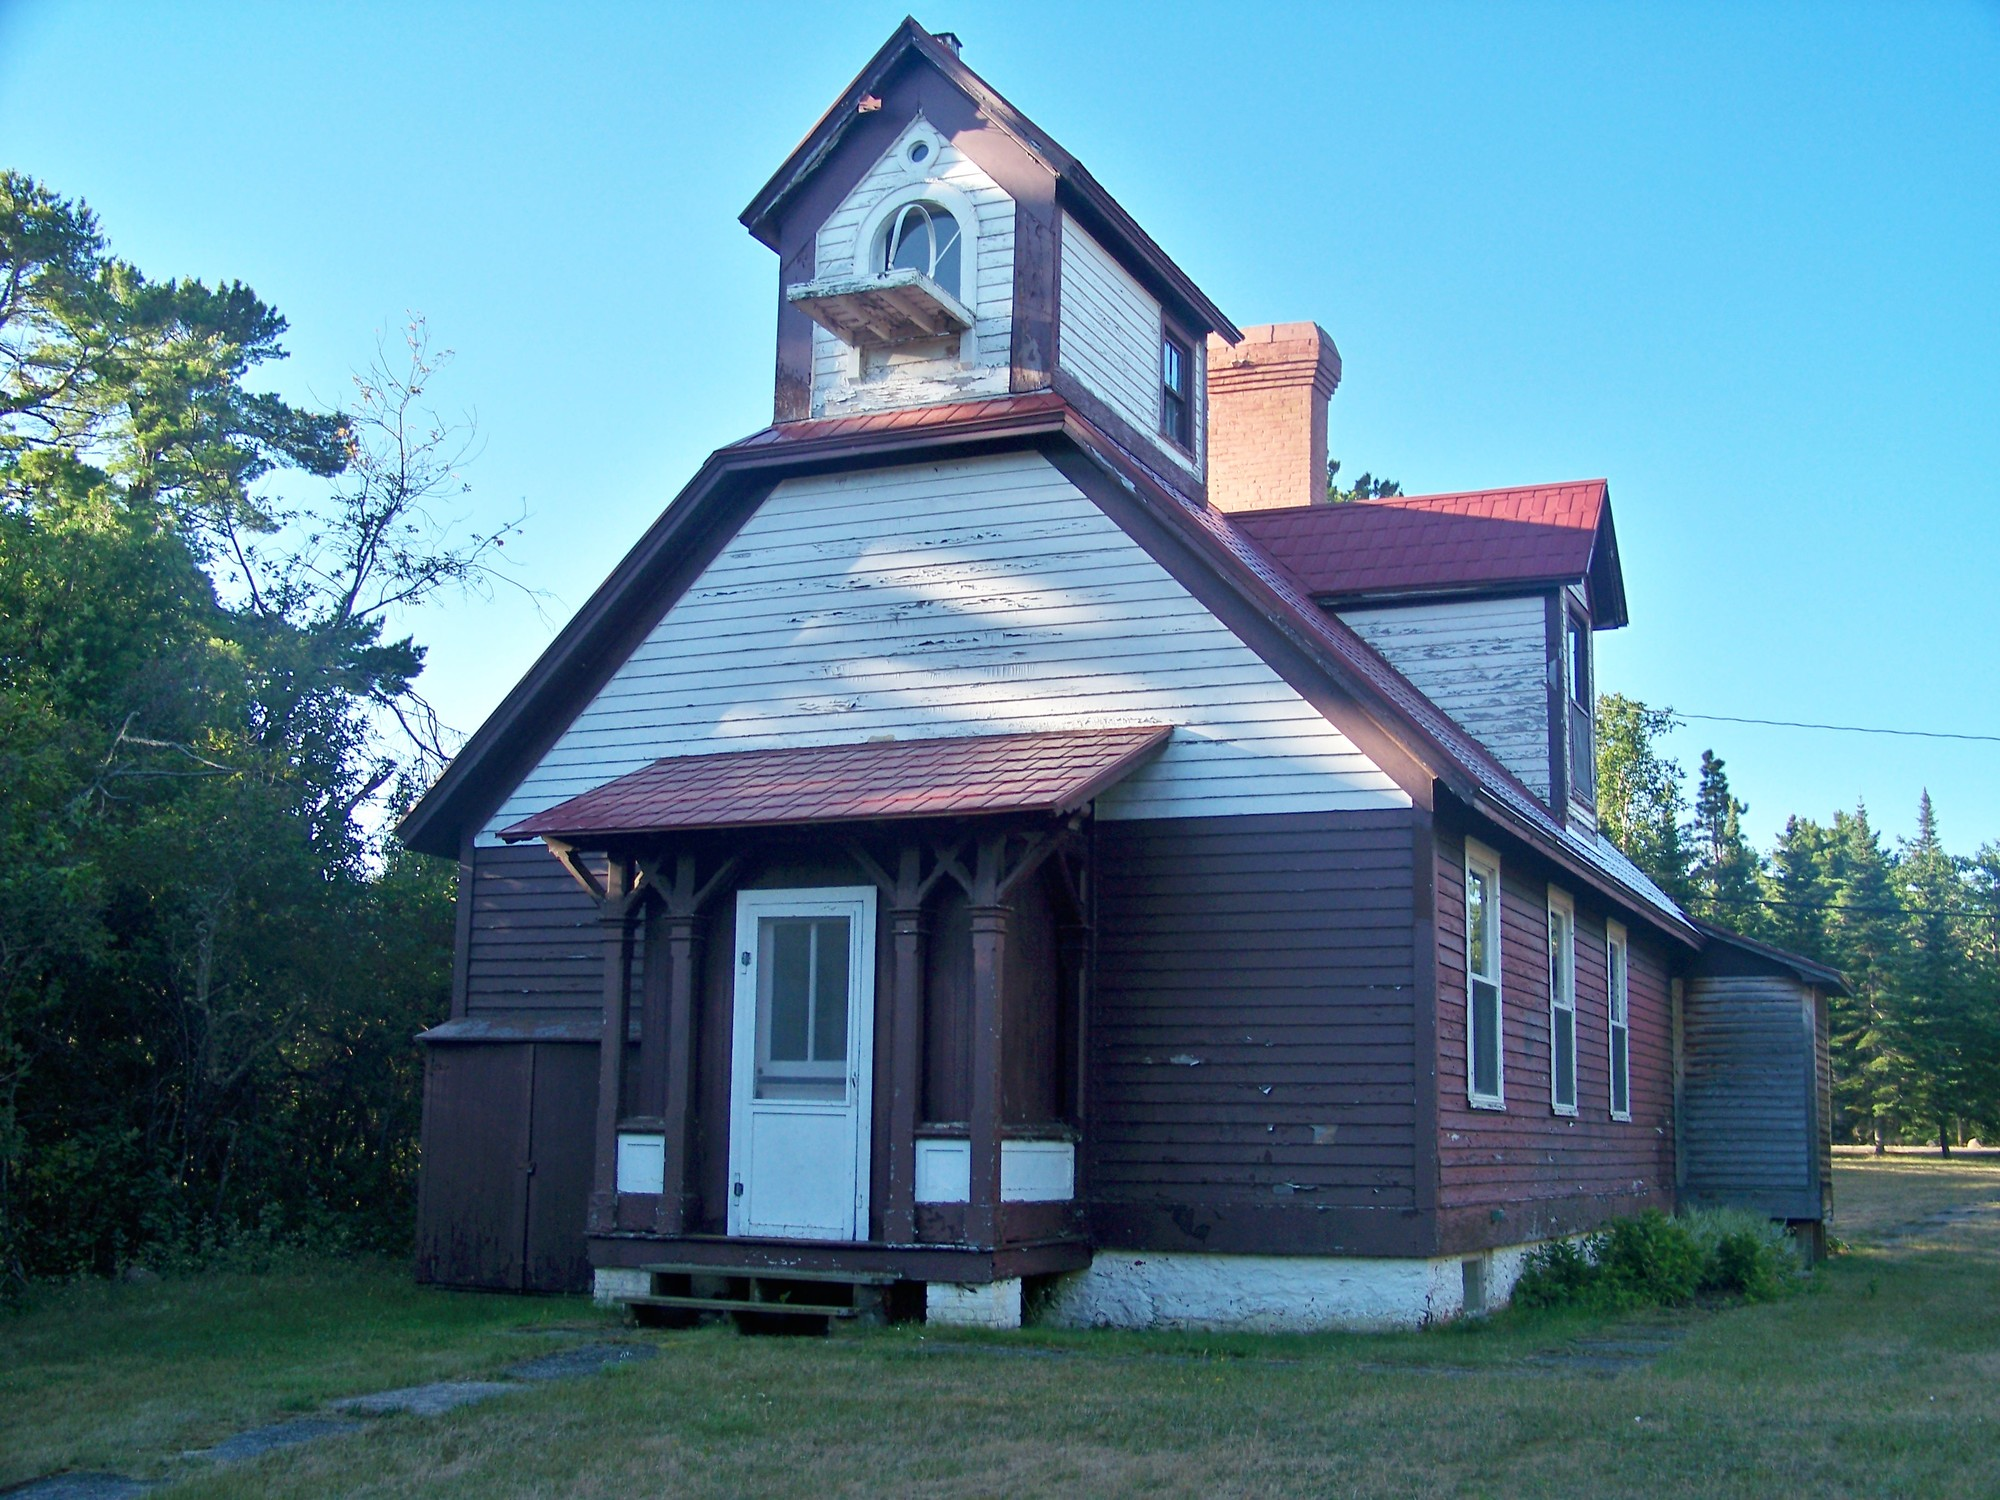 The 1868 Copper Harbor Range Lighthouse is shown prior to the start of restoration efforts, which are ongoing.